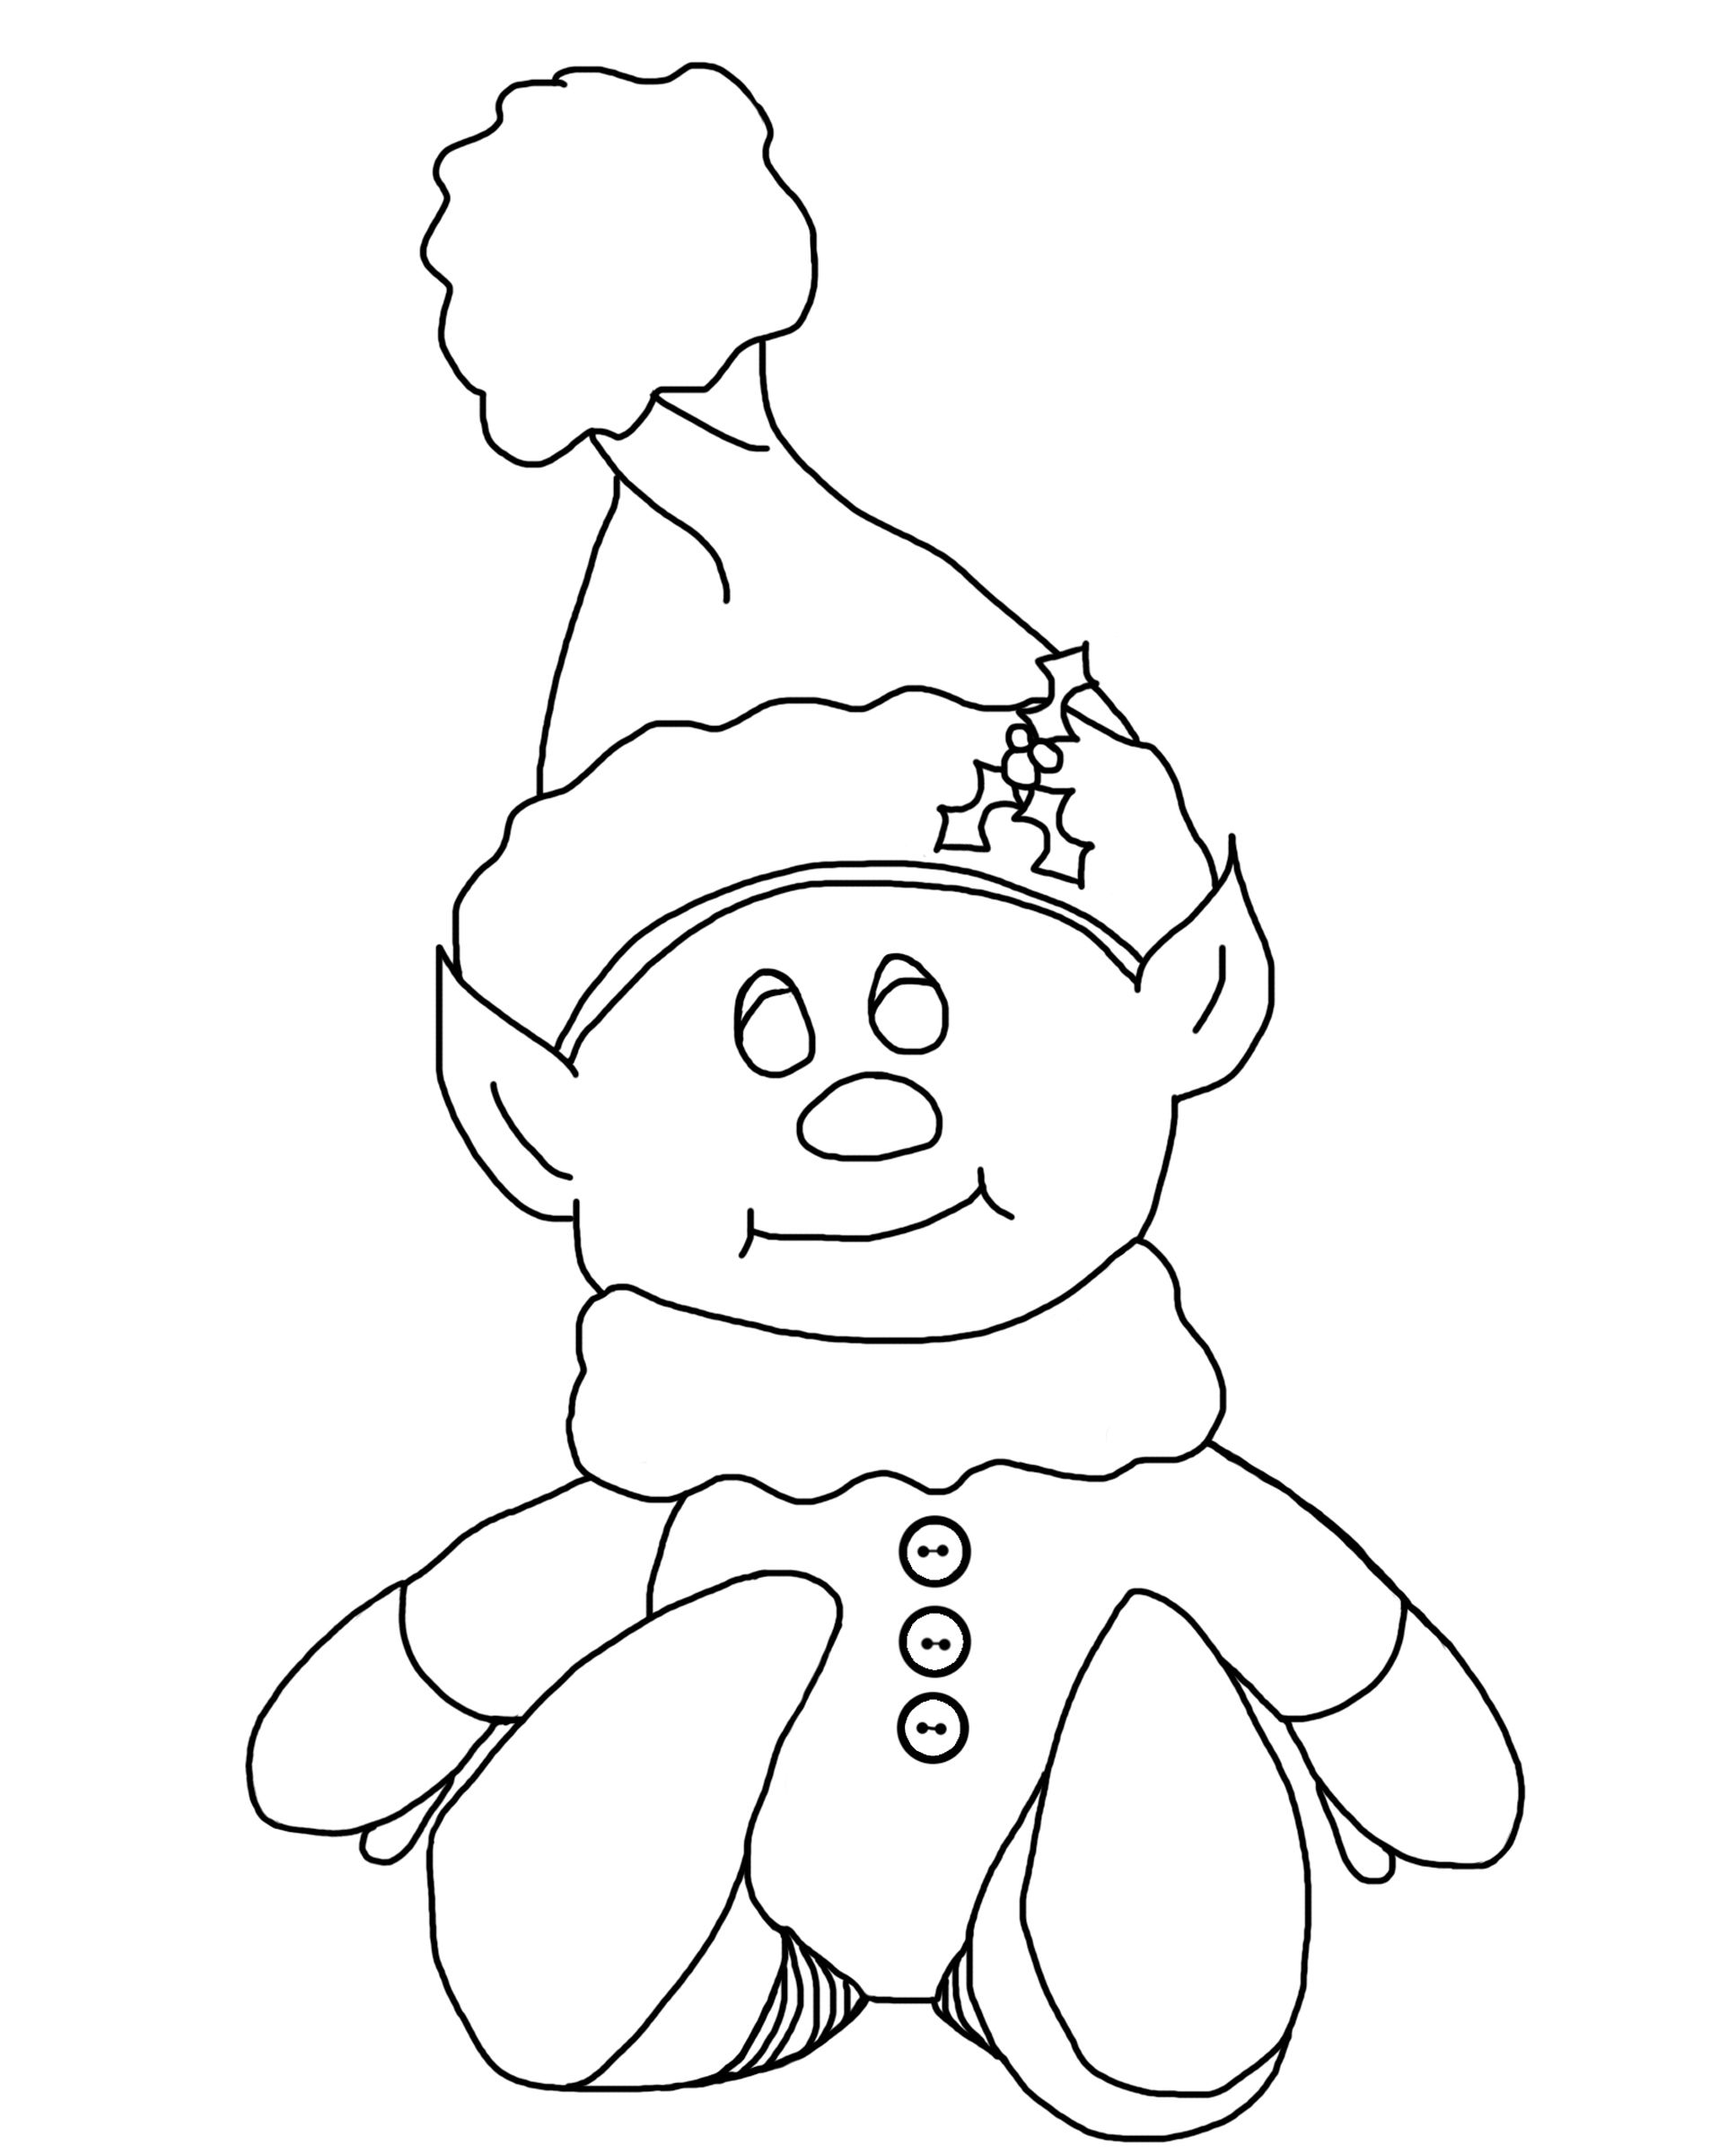 creepy fairy coloring pages the fairy art and fantasy art of molly harrison official fairy creepy coloring pages